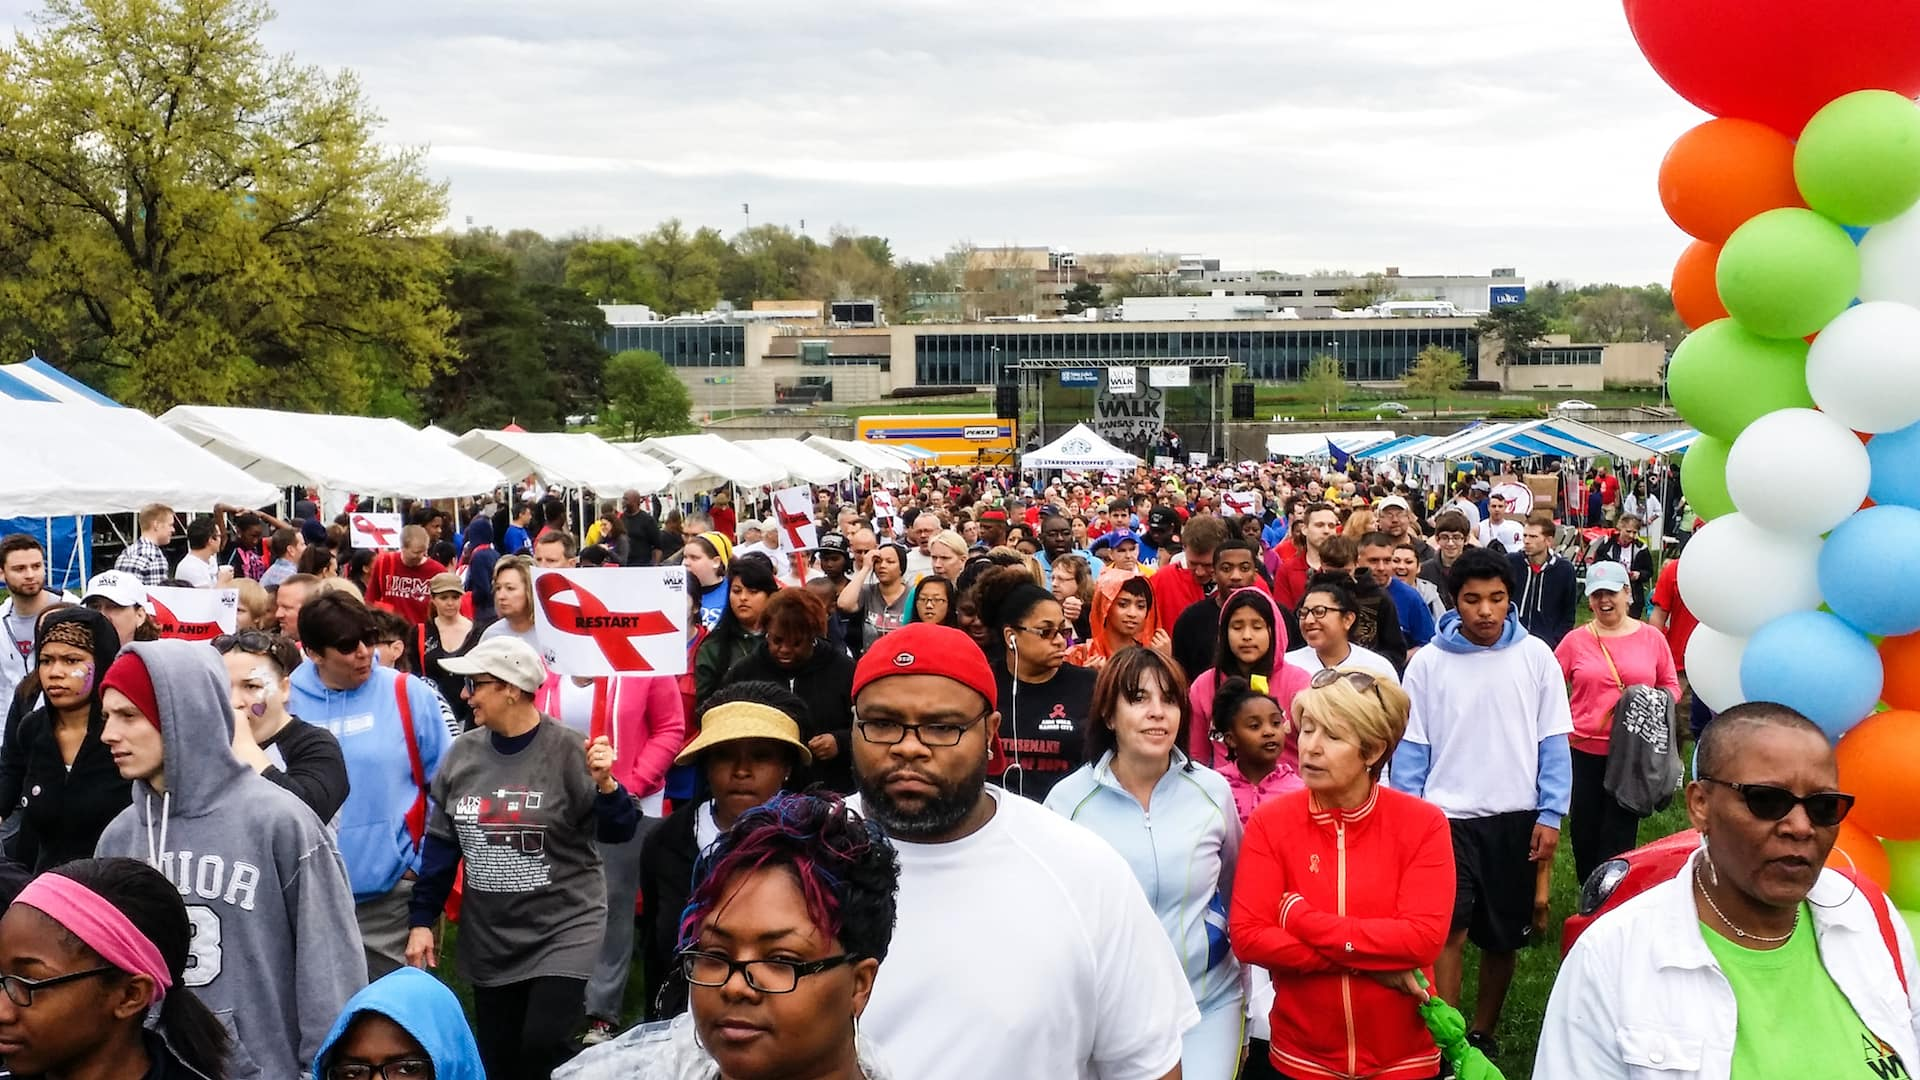 Aids Walk Images